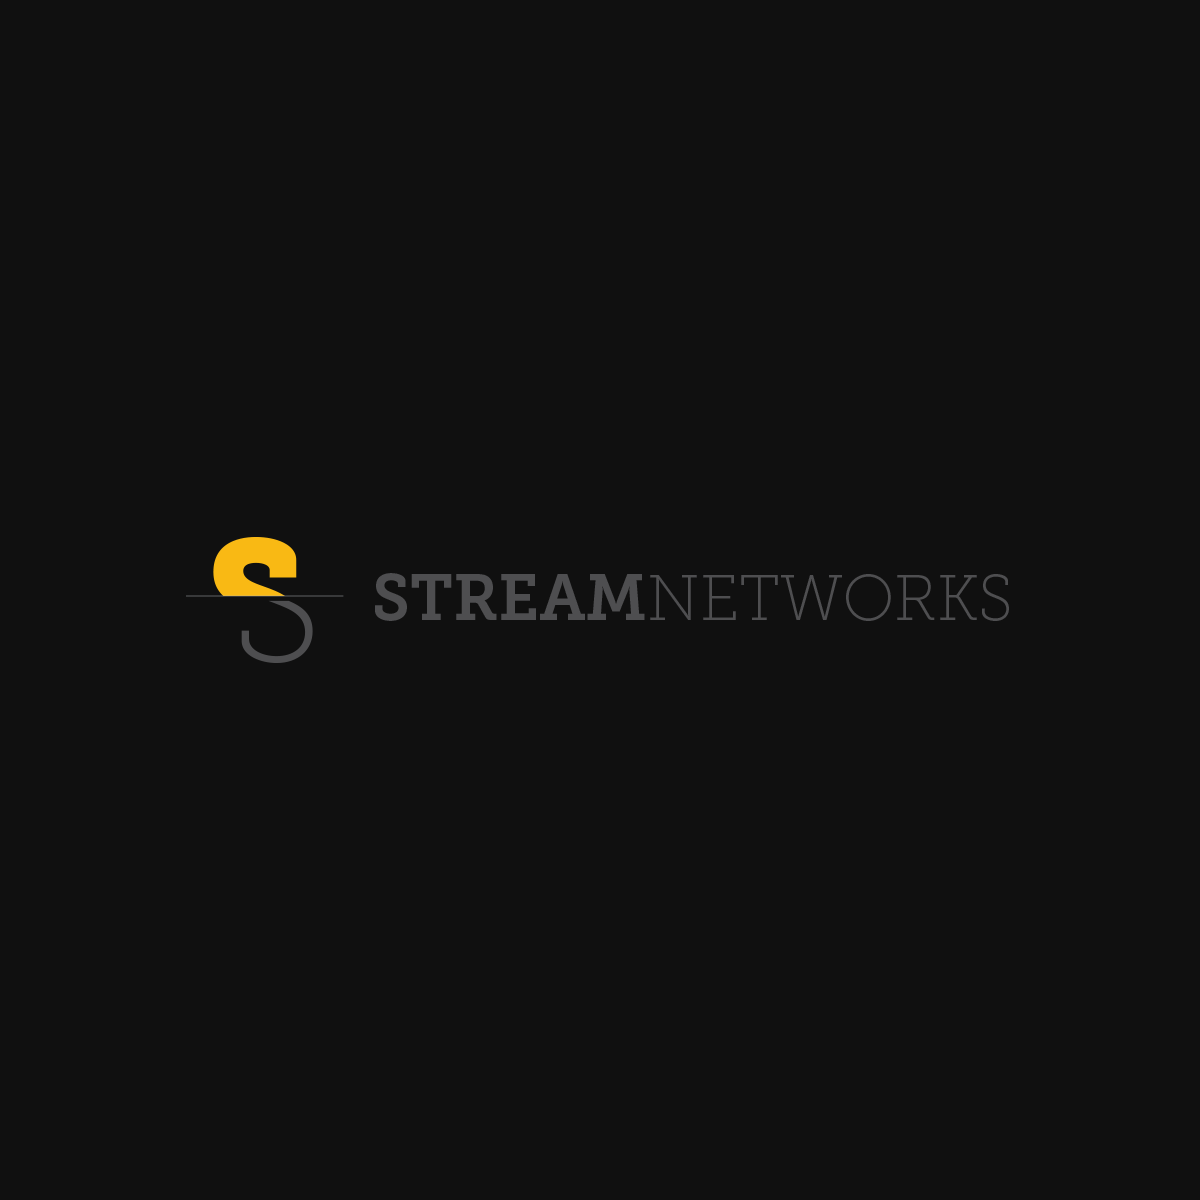 streamnetworks.png